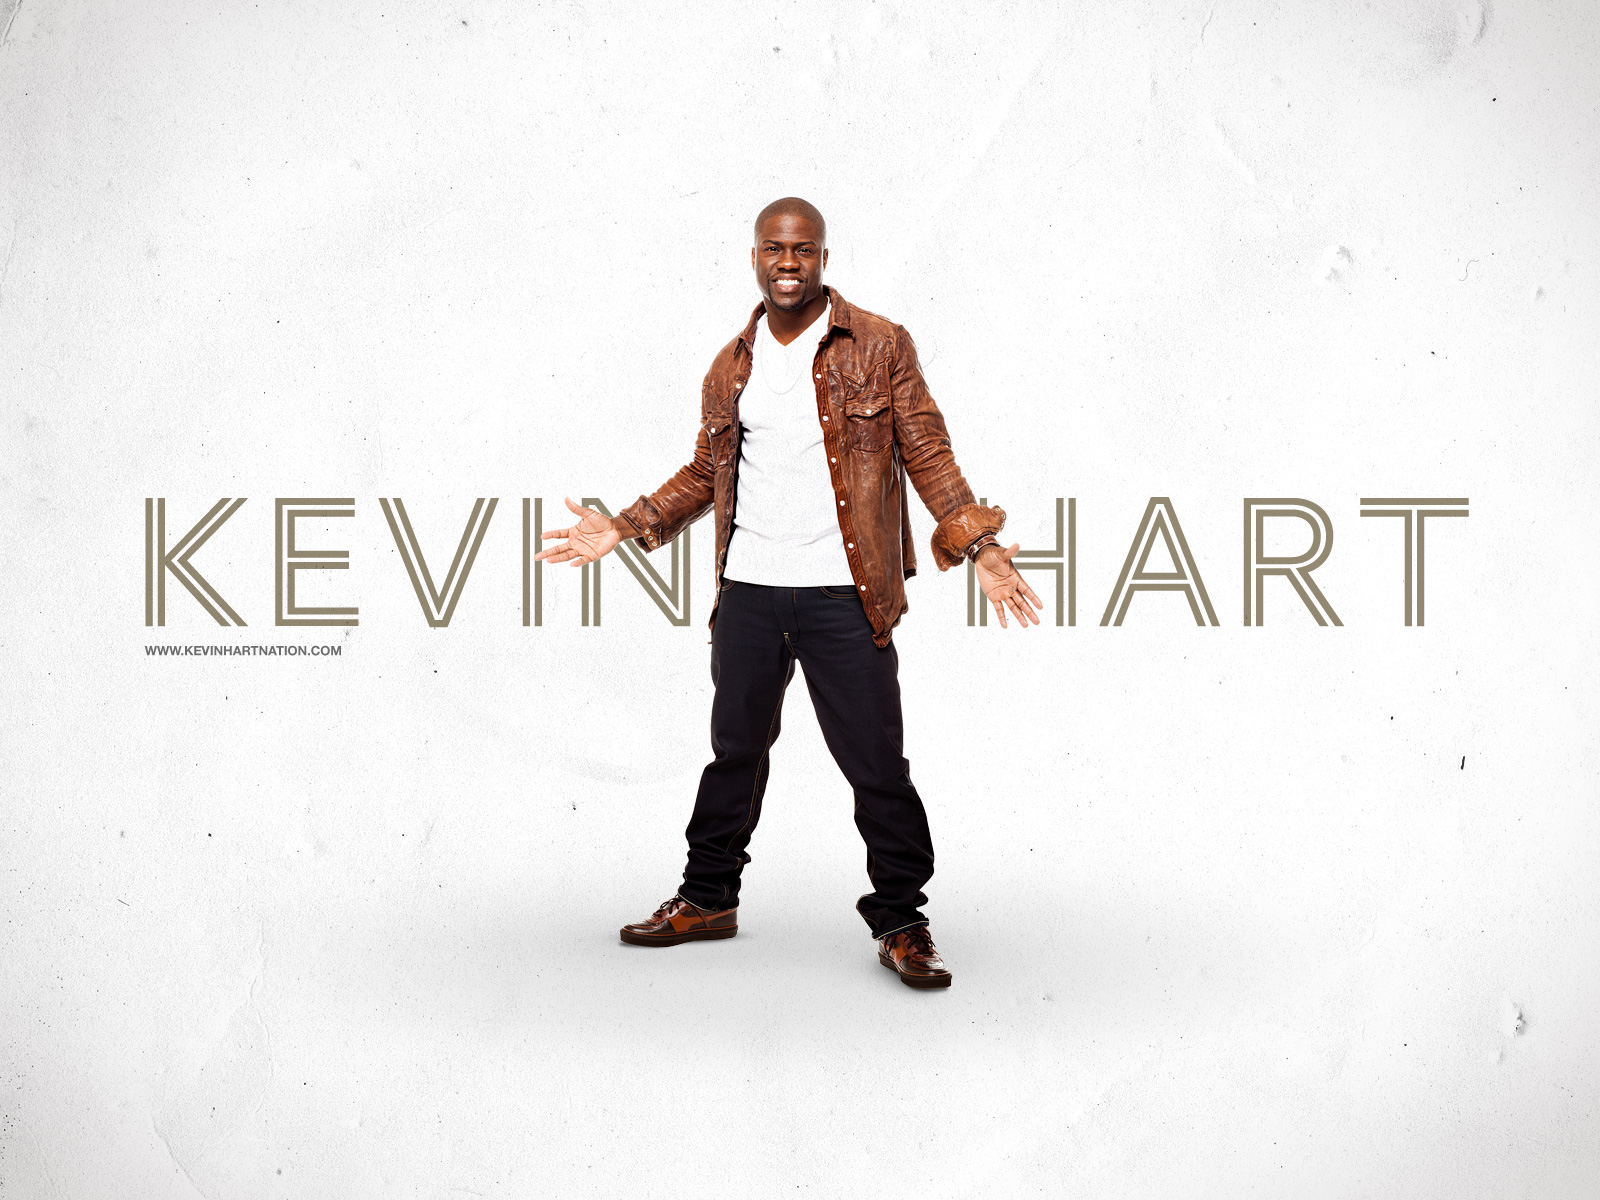 kevin hart movies 2019 and 2020